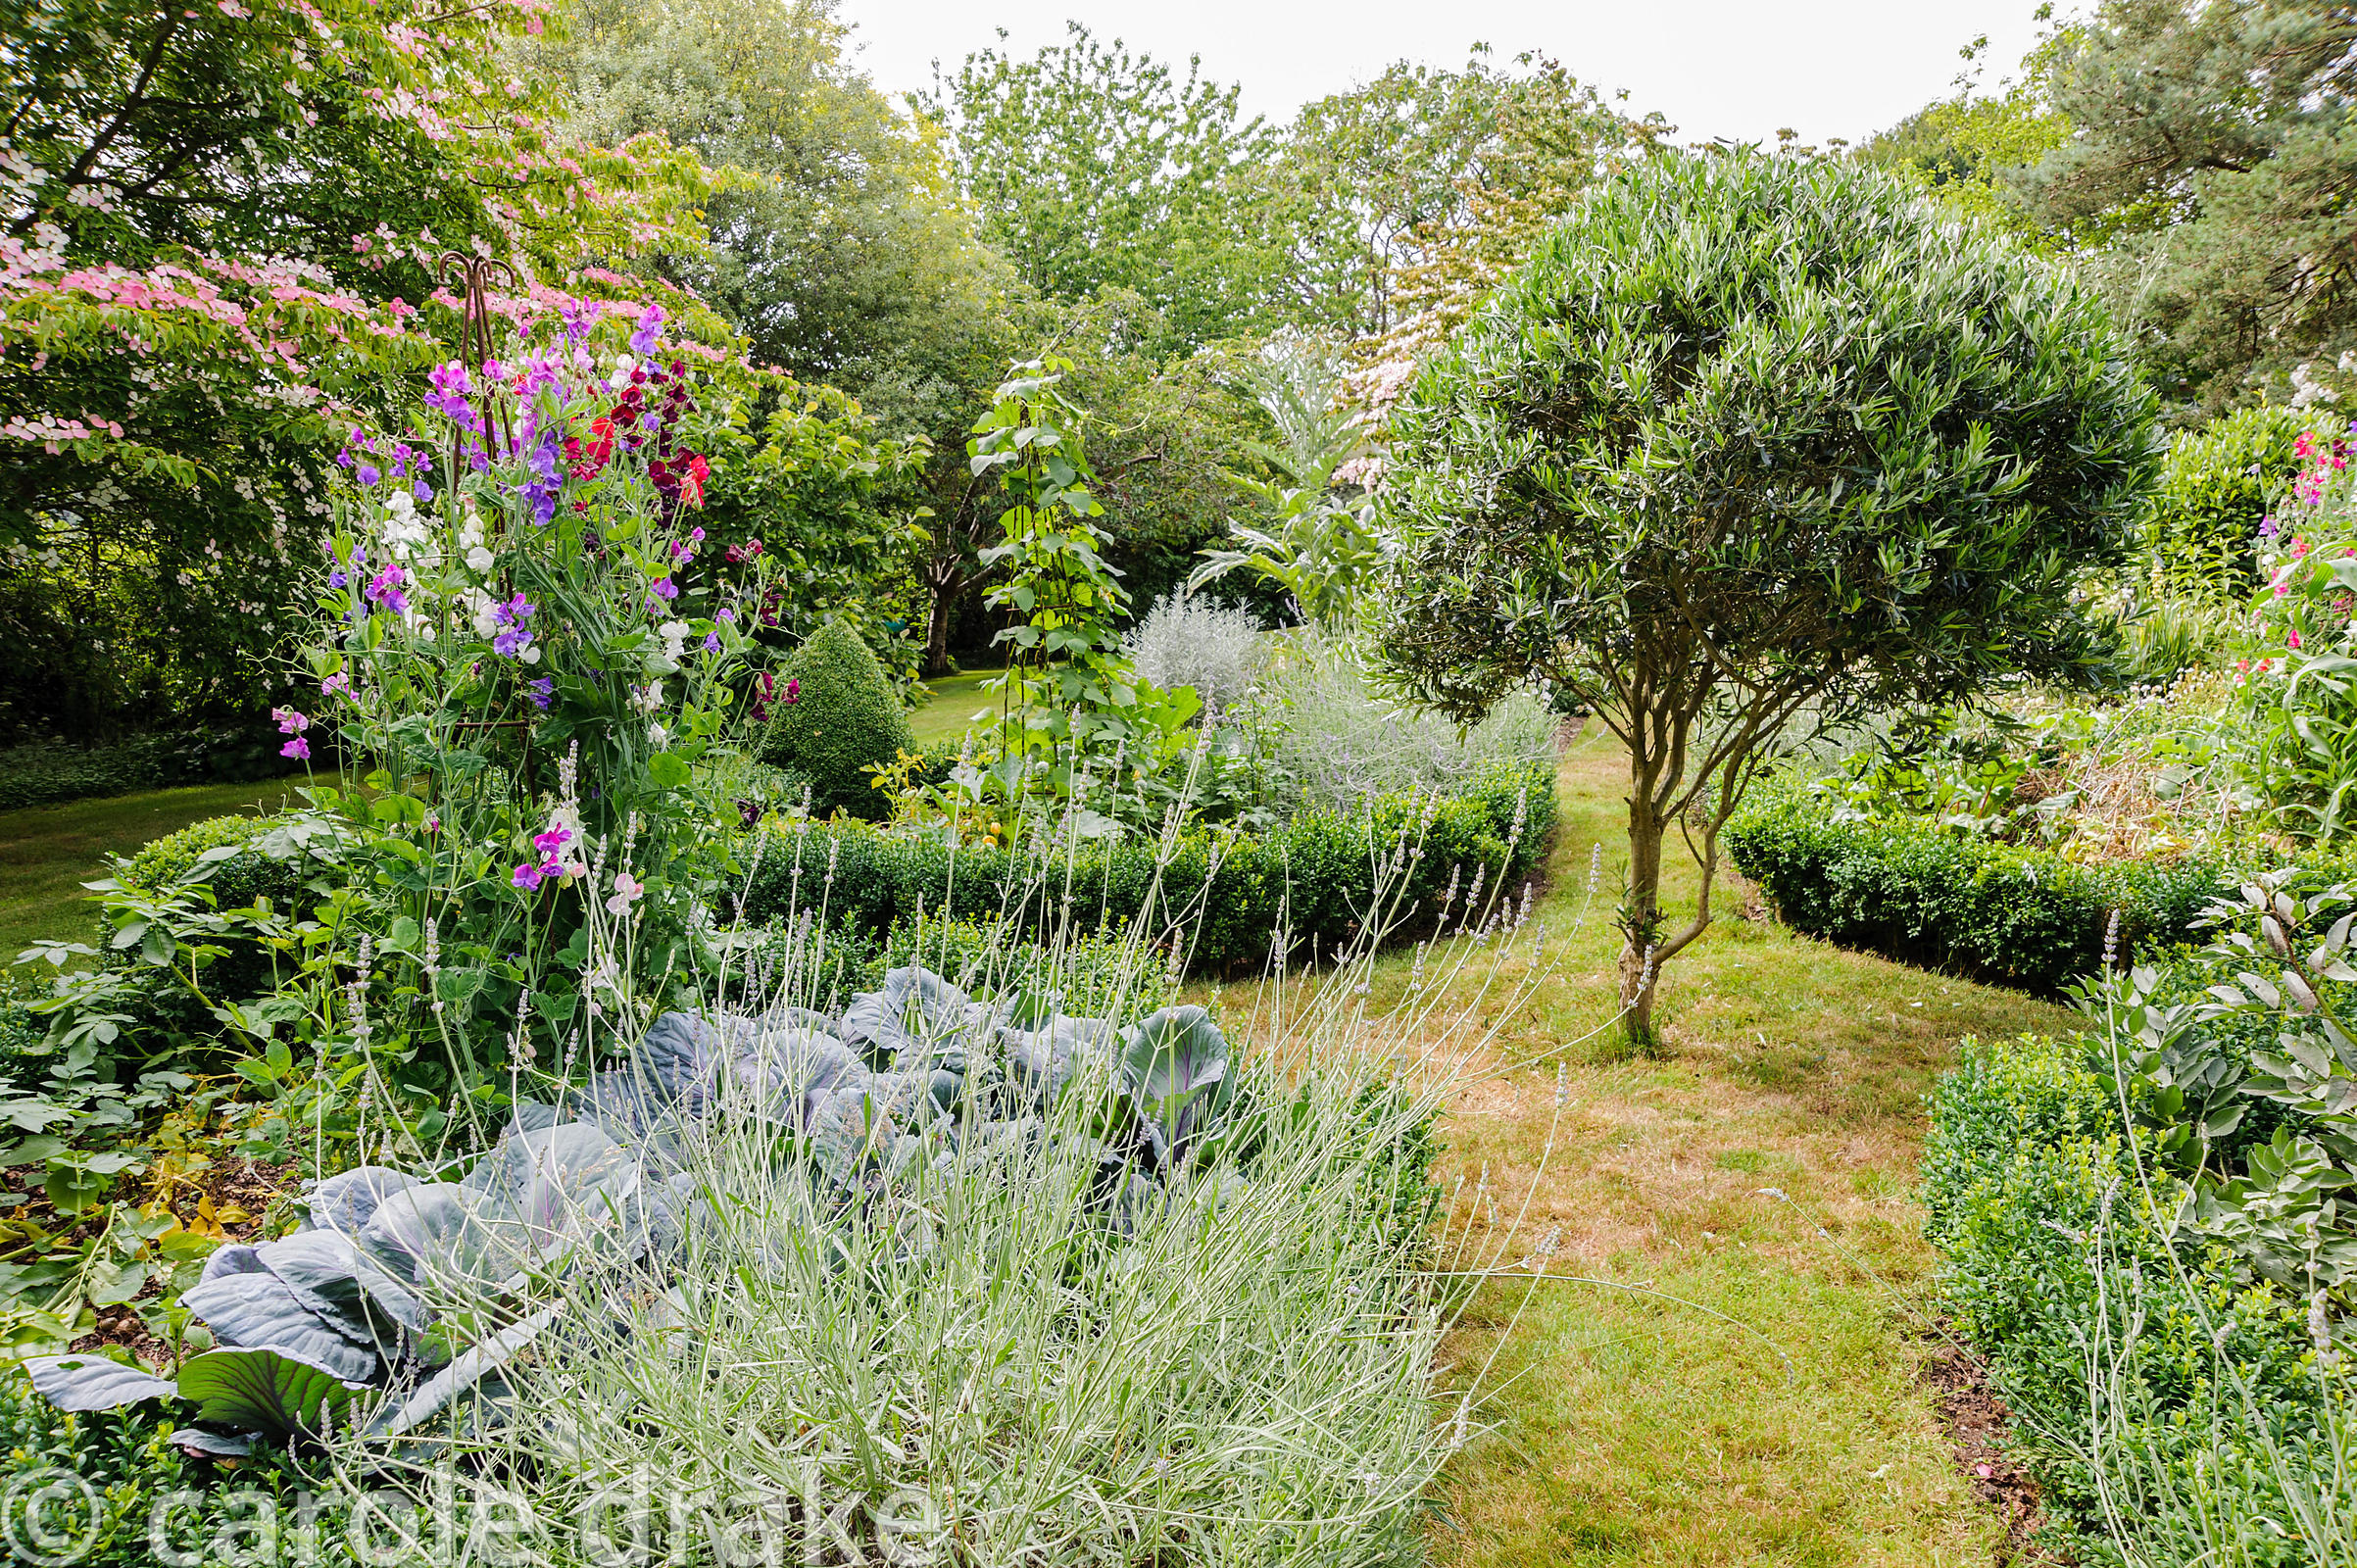 Decorative vegetable garden with box edged beds, lavender and sweet peas growing up metal obelisks.